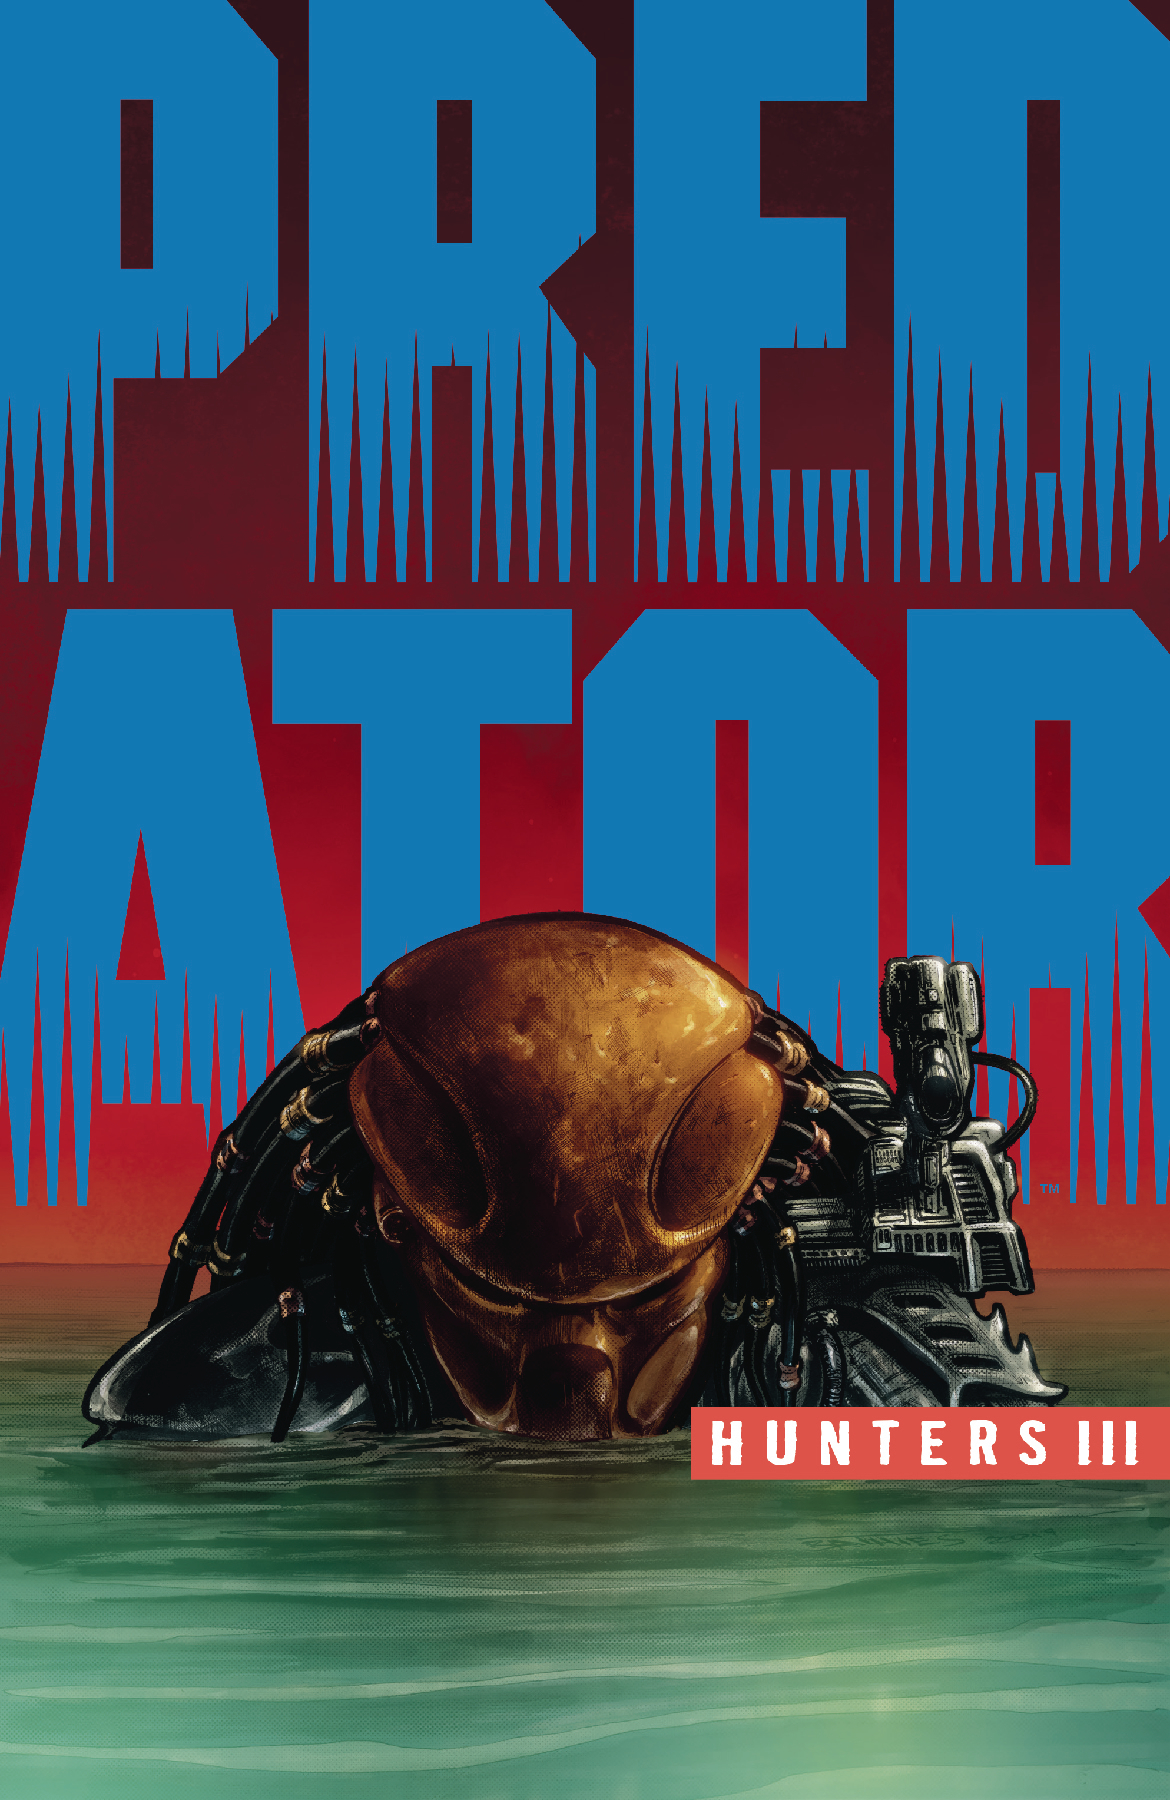 PREDATOR HUNTERS III #2 (OF 4) CVR A THIES